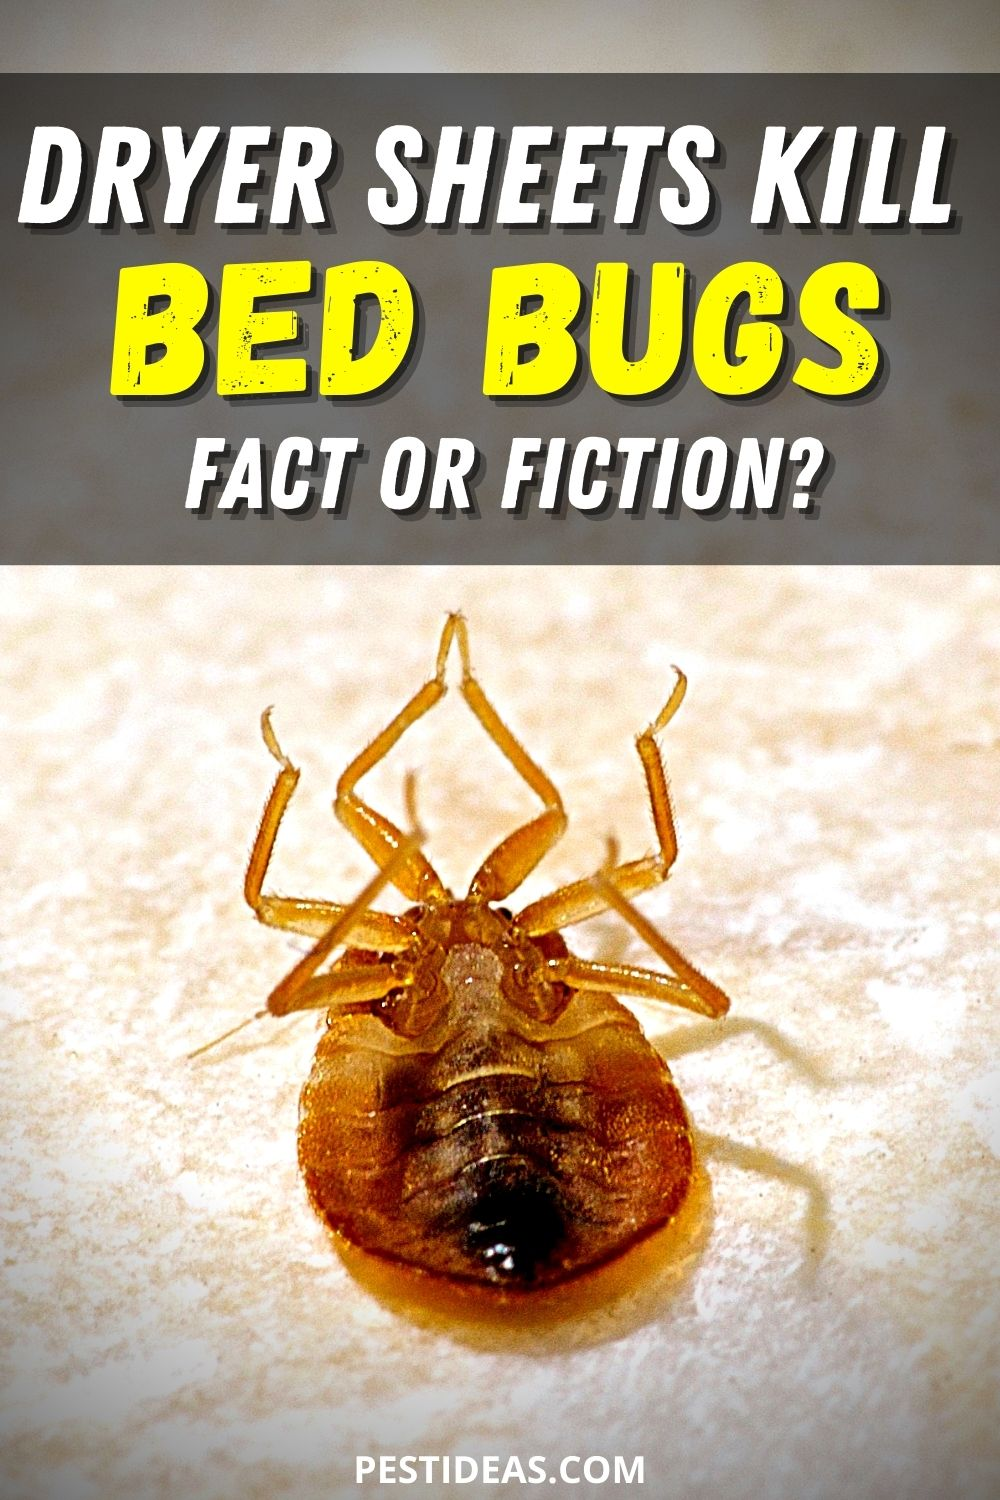 Dryer Sheets Kill Bed Bugs